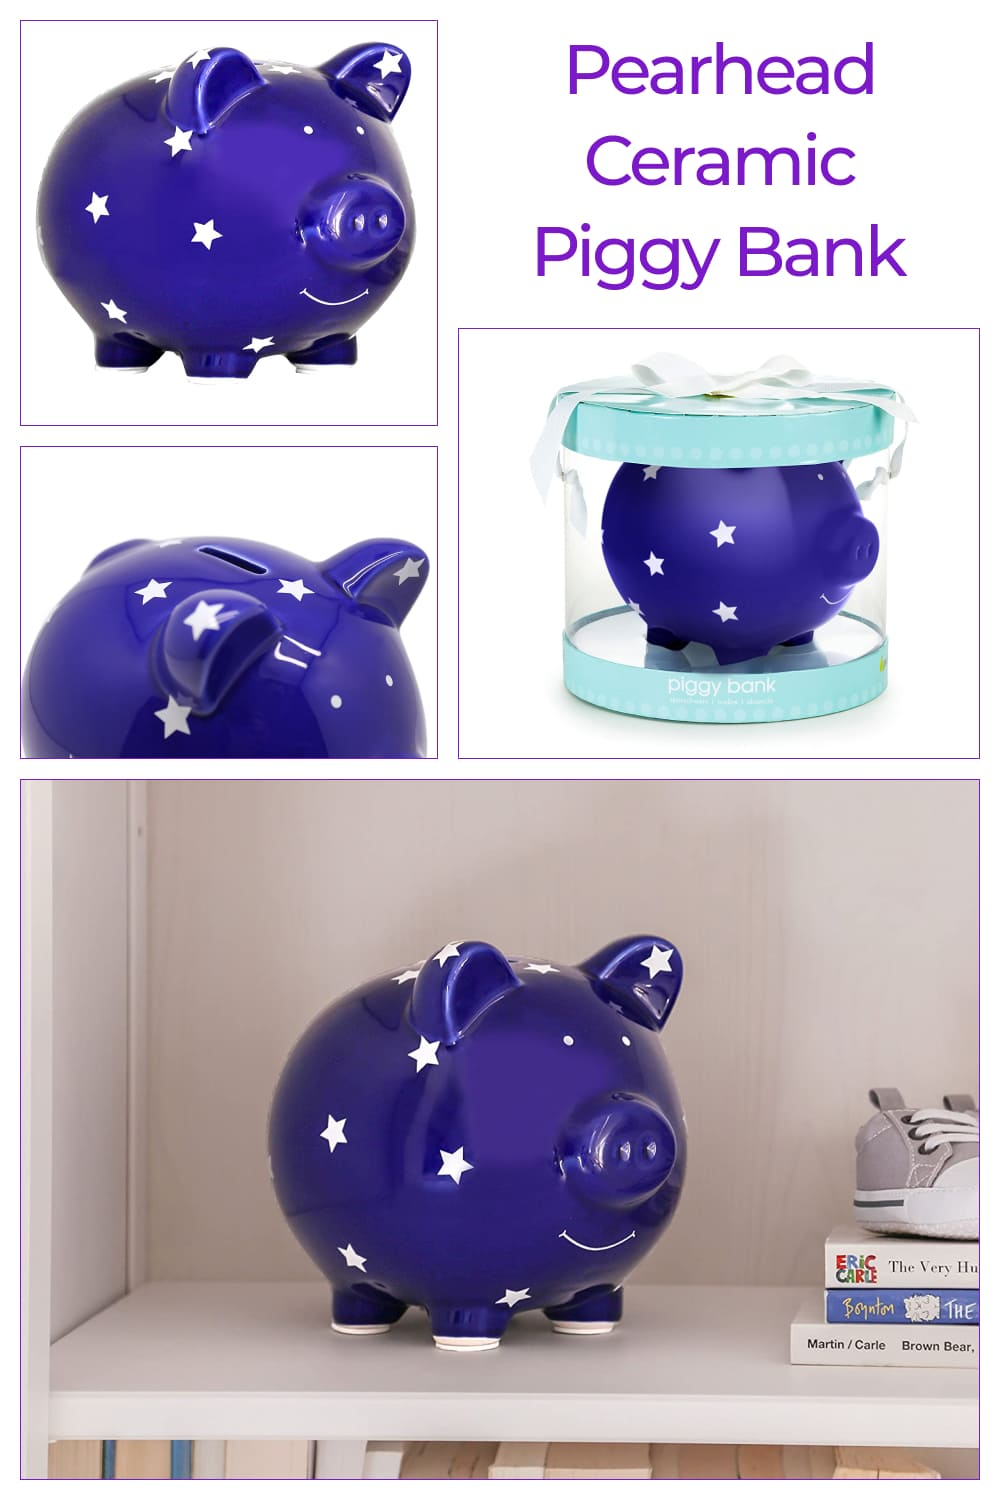 Pearhead glazed ceramic piggy bank is the perfect gift for baby.